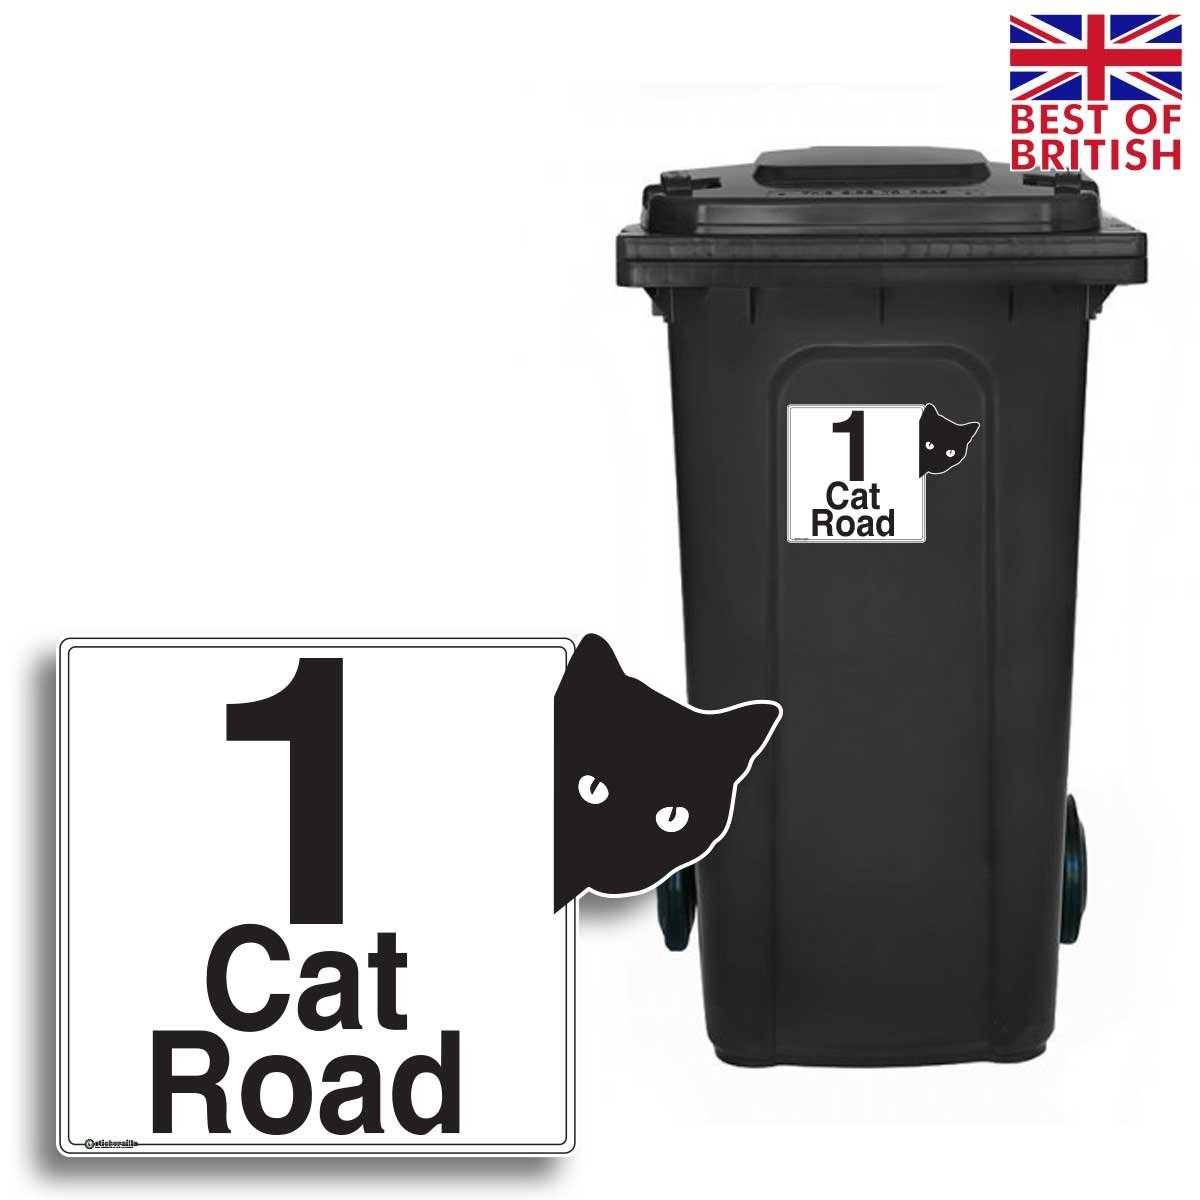 CAT - Personalised Wheelie Bin Sticker/Vinyl Labels with House Number & Street Name - Size A5 [4 Pack] Stickerzilla